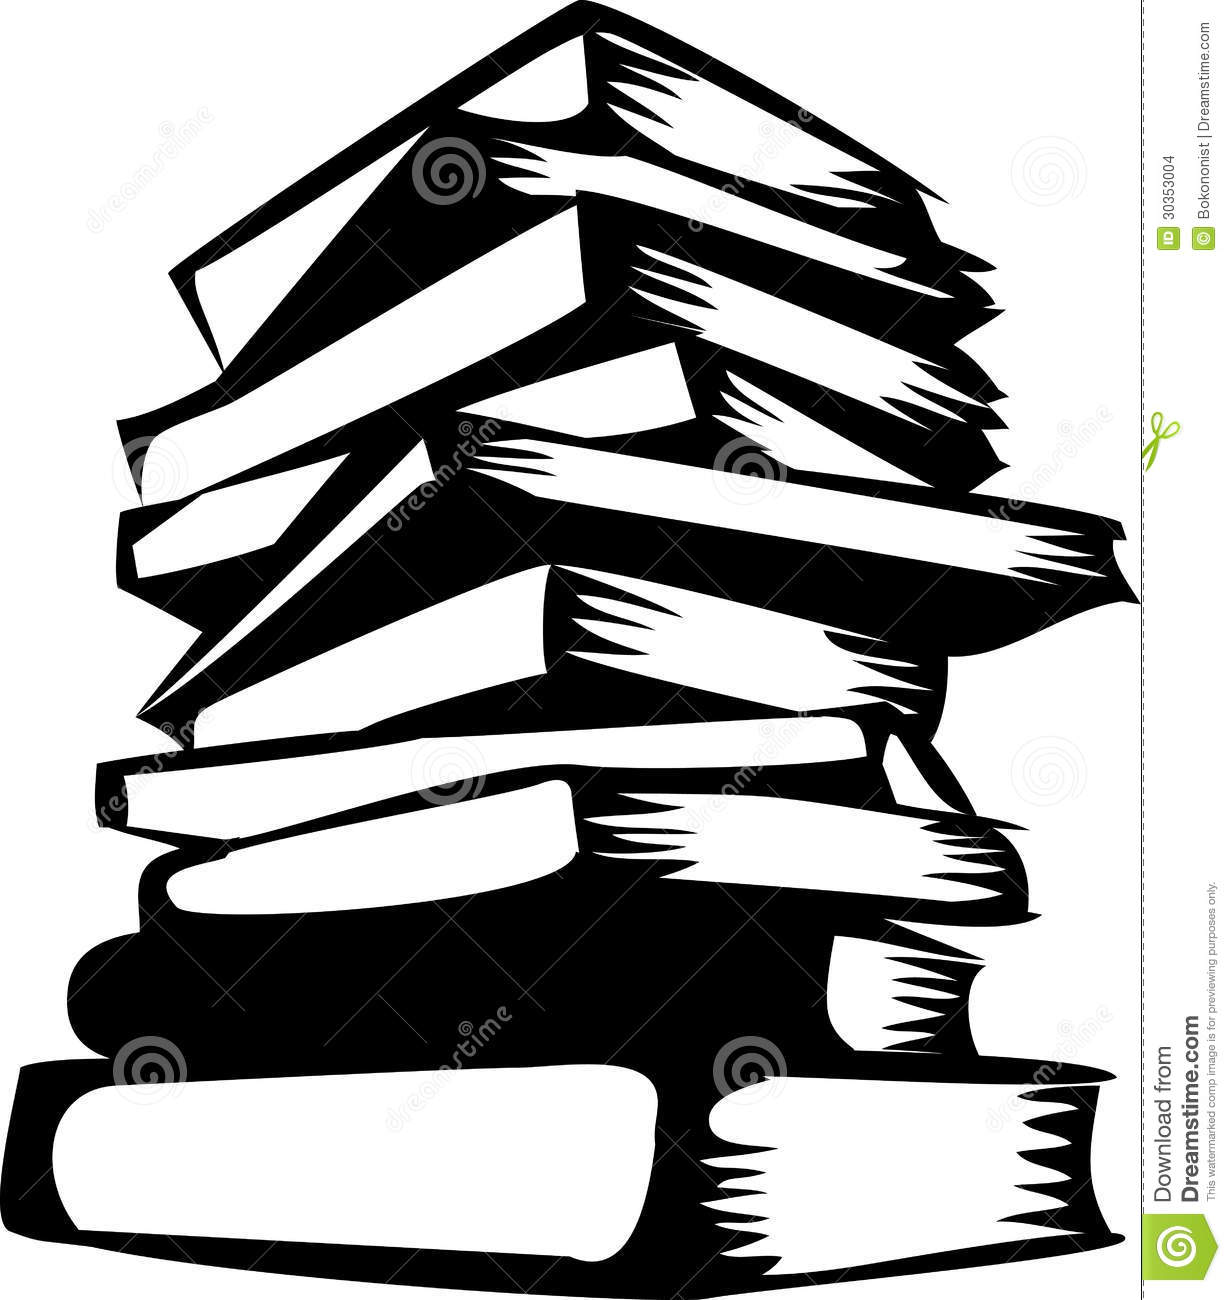 Stack Of Books Clipart Black And White Clipart Panda - Free ...